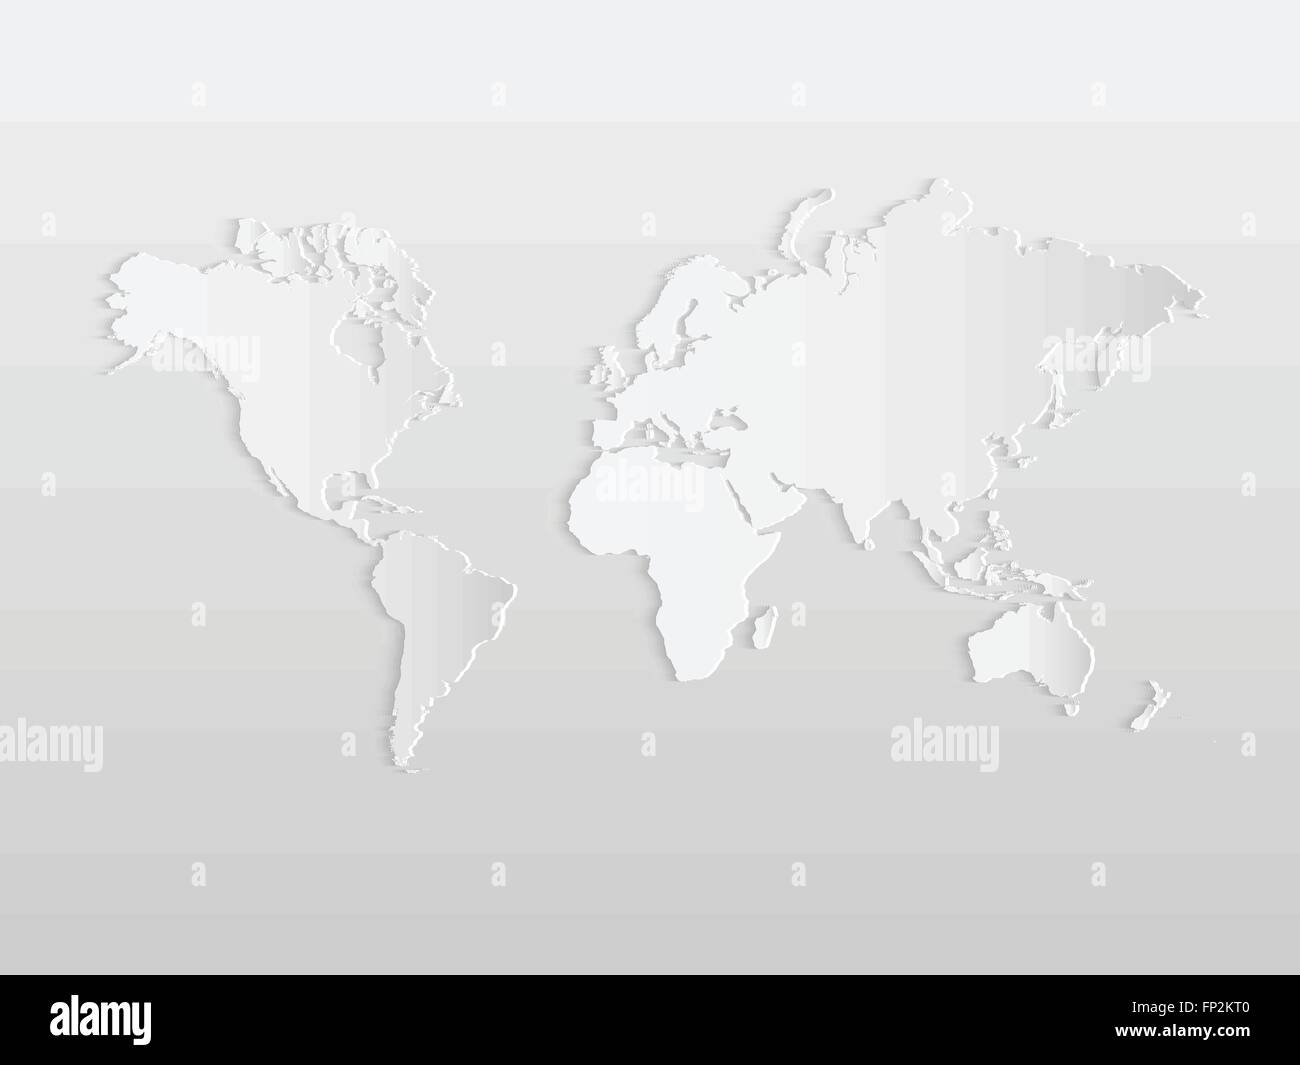 Illustration of a paper world map on a light background stock illustration of a paper world map on a light background sciox Image collections